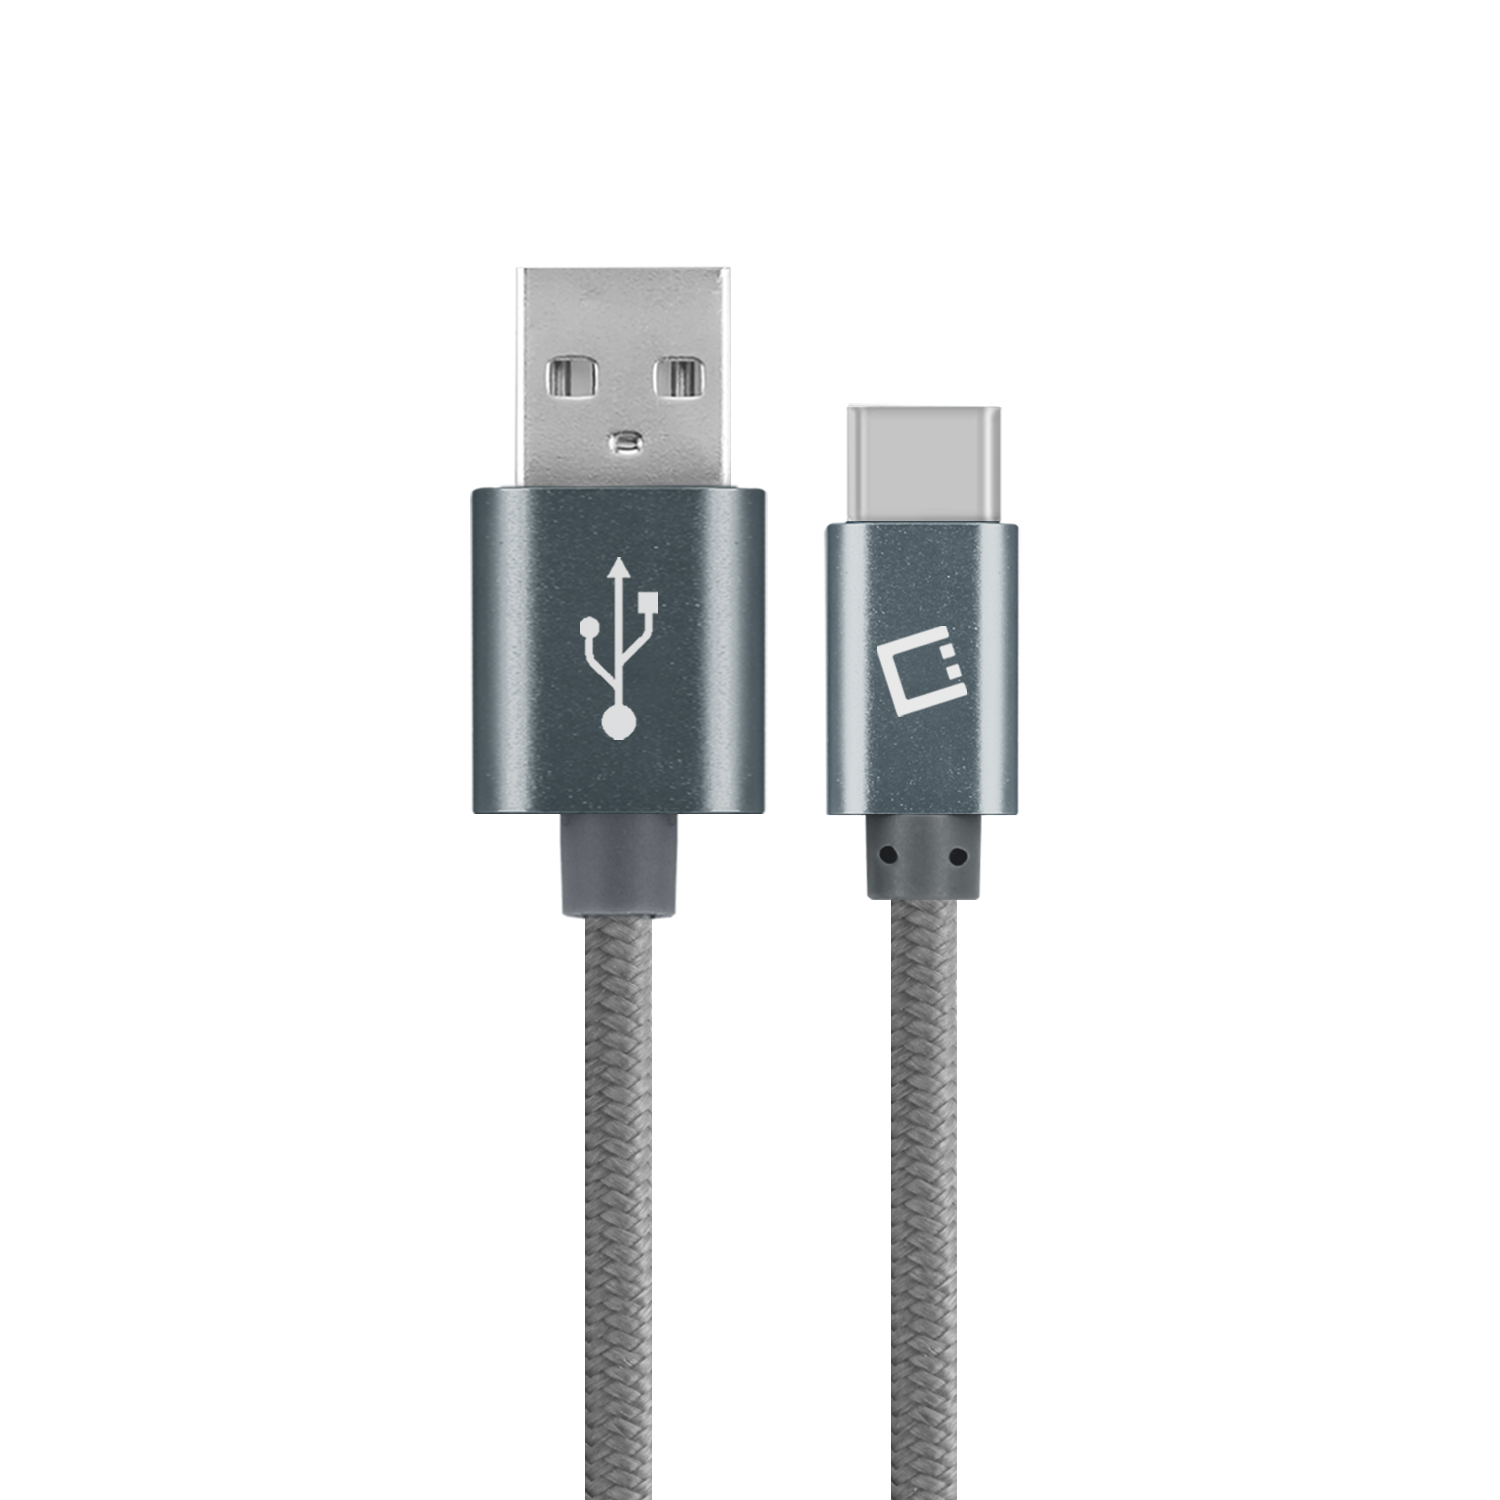 ZTE Blade Spark USB Type-C To Type-A Braided Data Power Cable Grey 10ft Braided